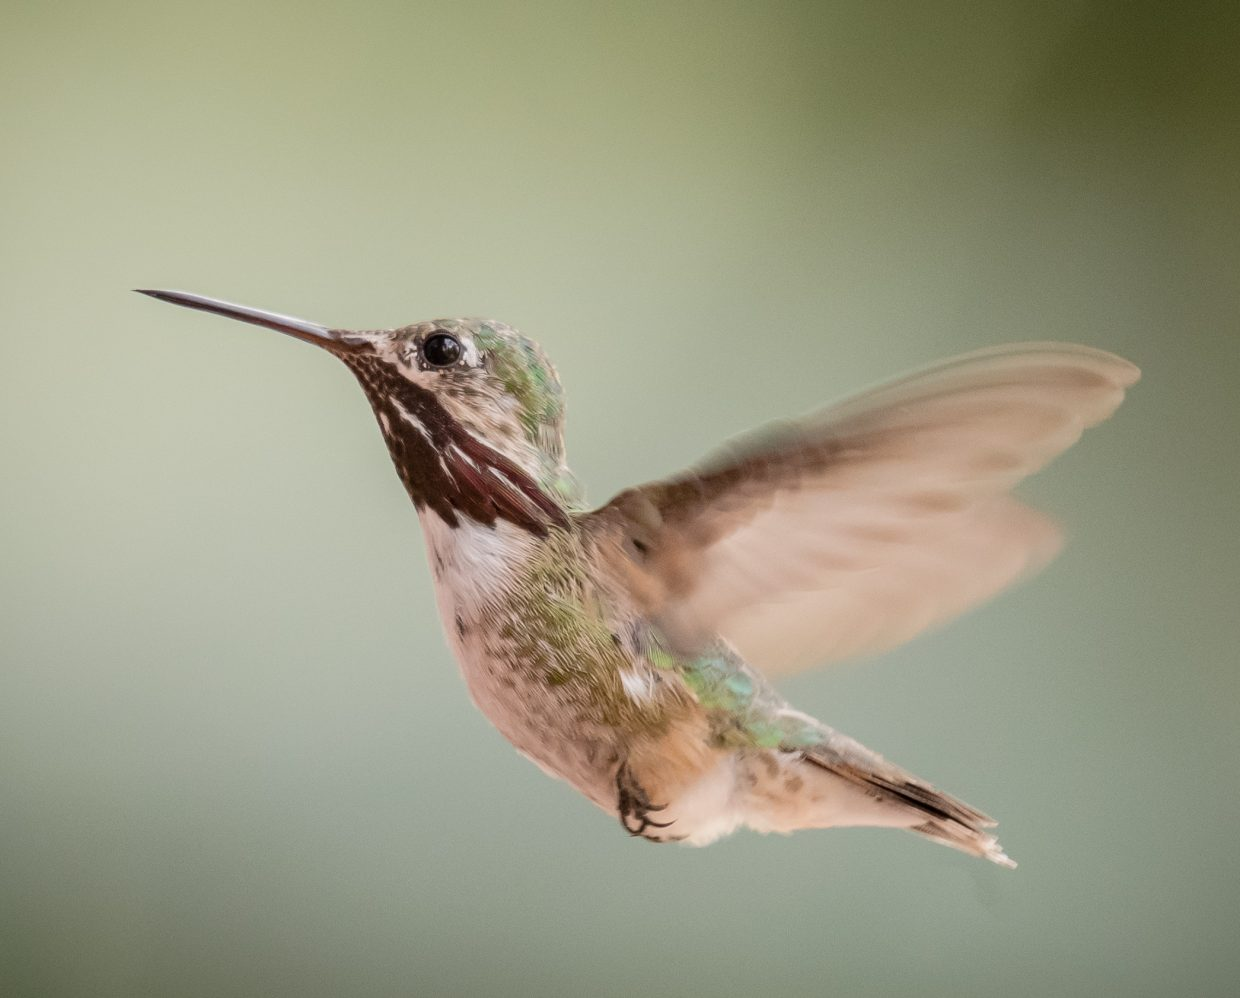 A hummingbird captured in mid flight.